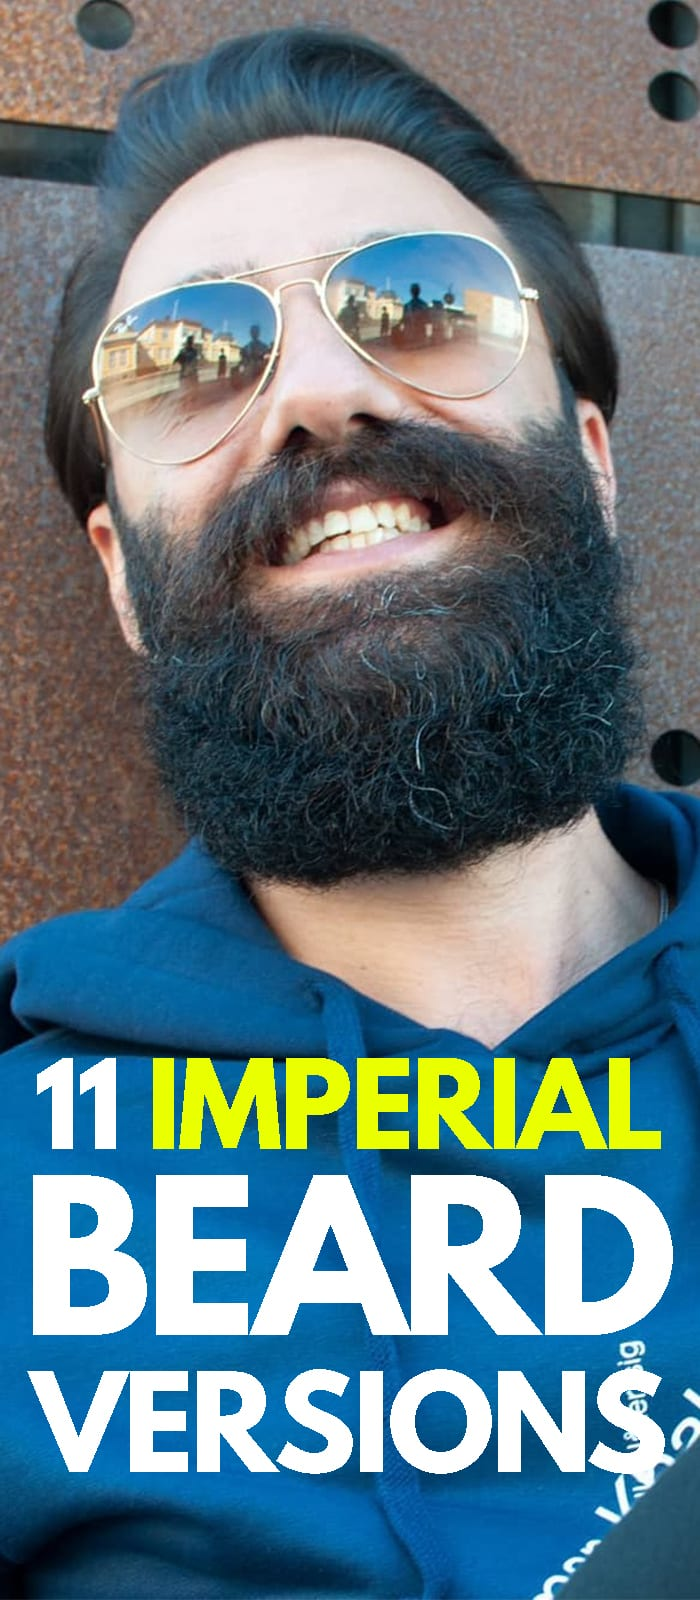 Imperial Beard Versions.